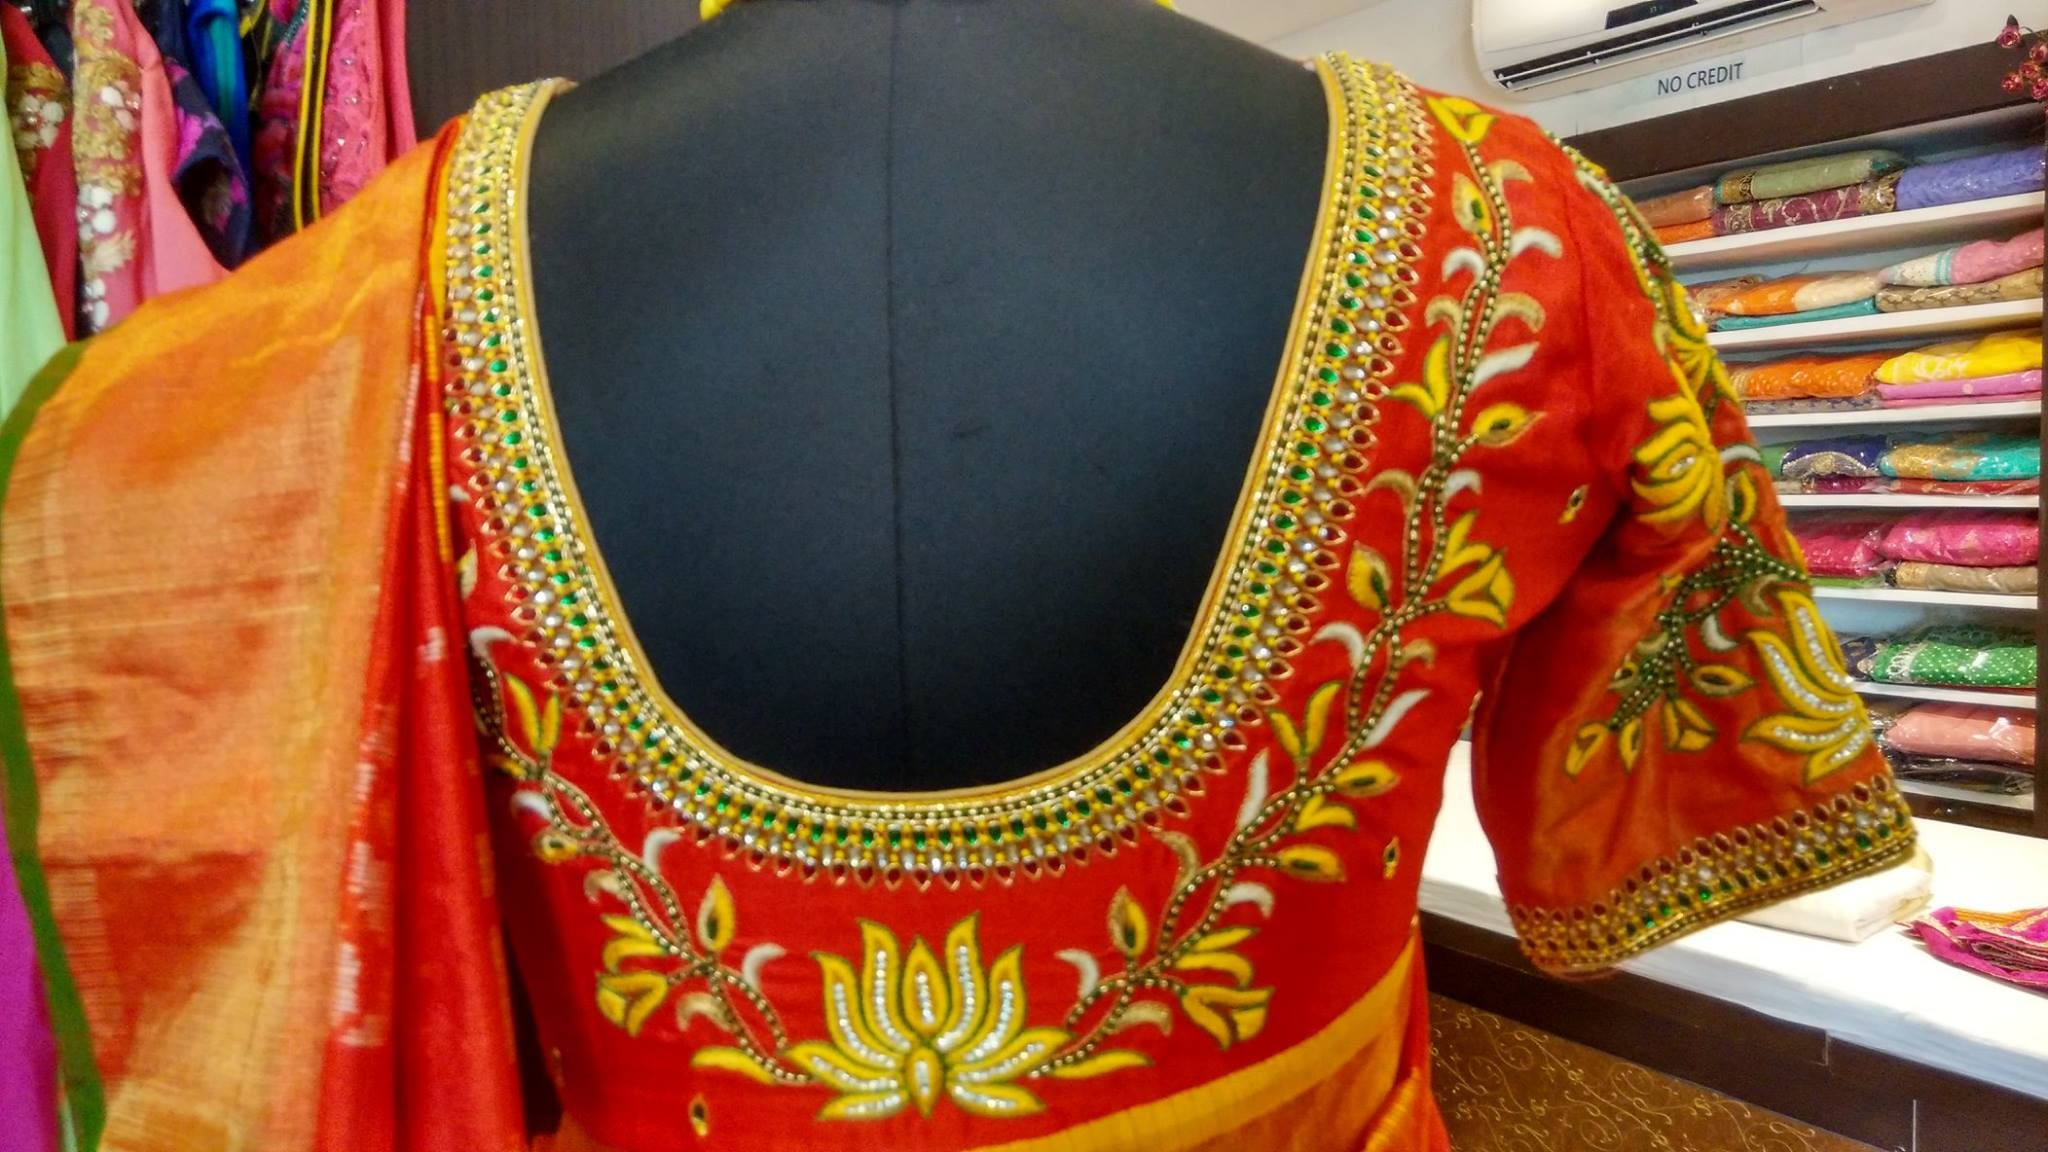 Designer Blouses By Gayathri Reddy Hderabad Contact 9246443366 040 27113733 Blouse Work Designs Maggam Work Blouse Designs Blouse Designs